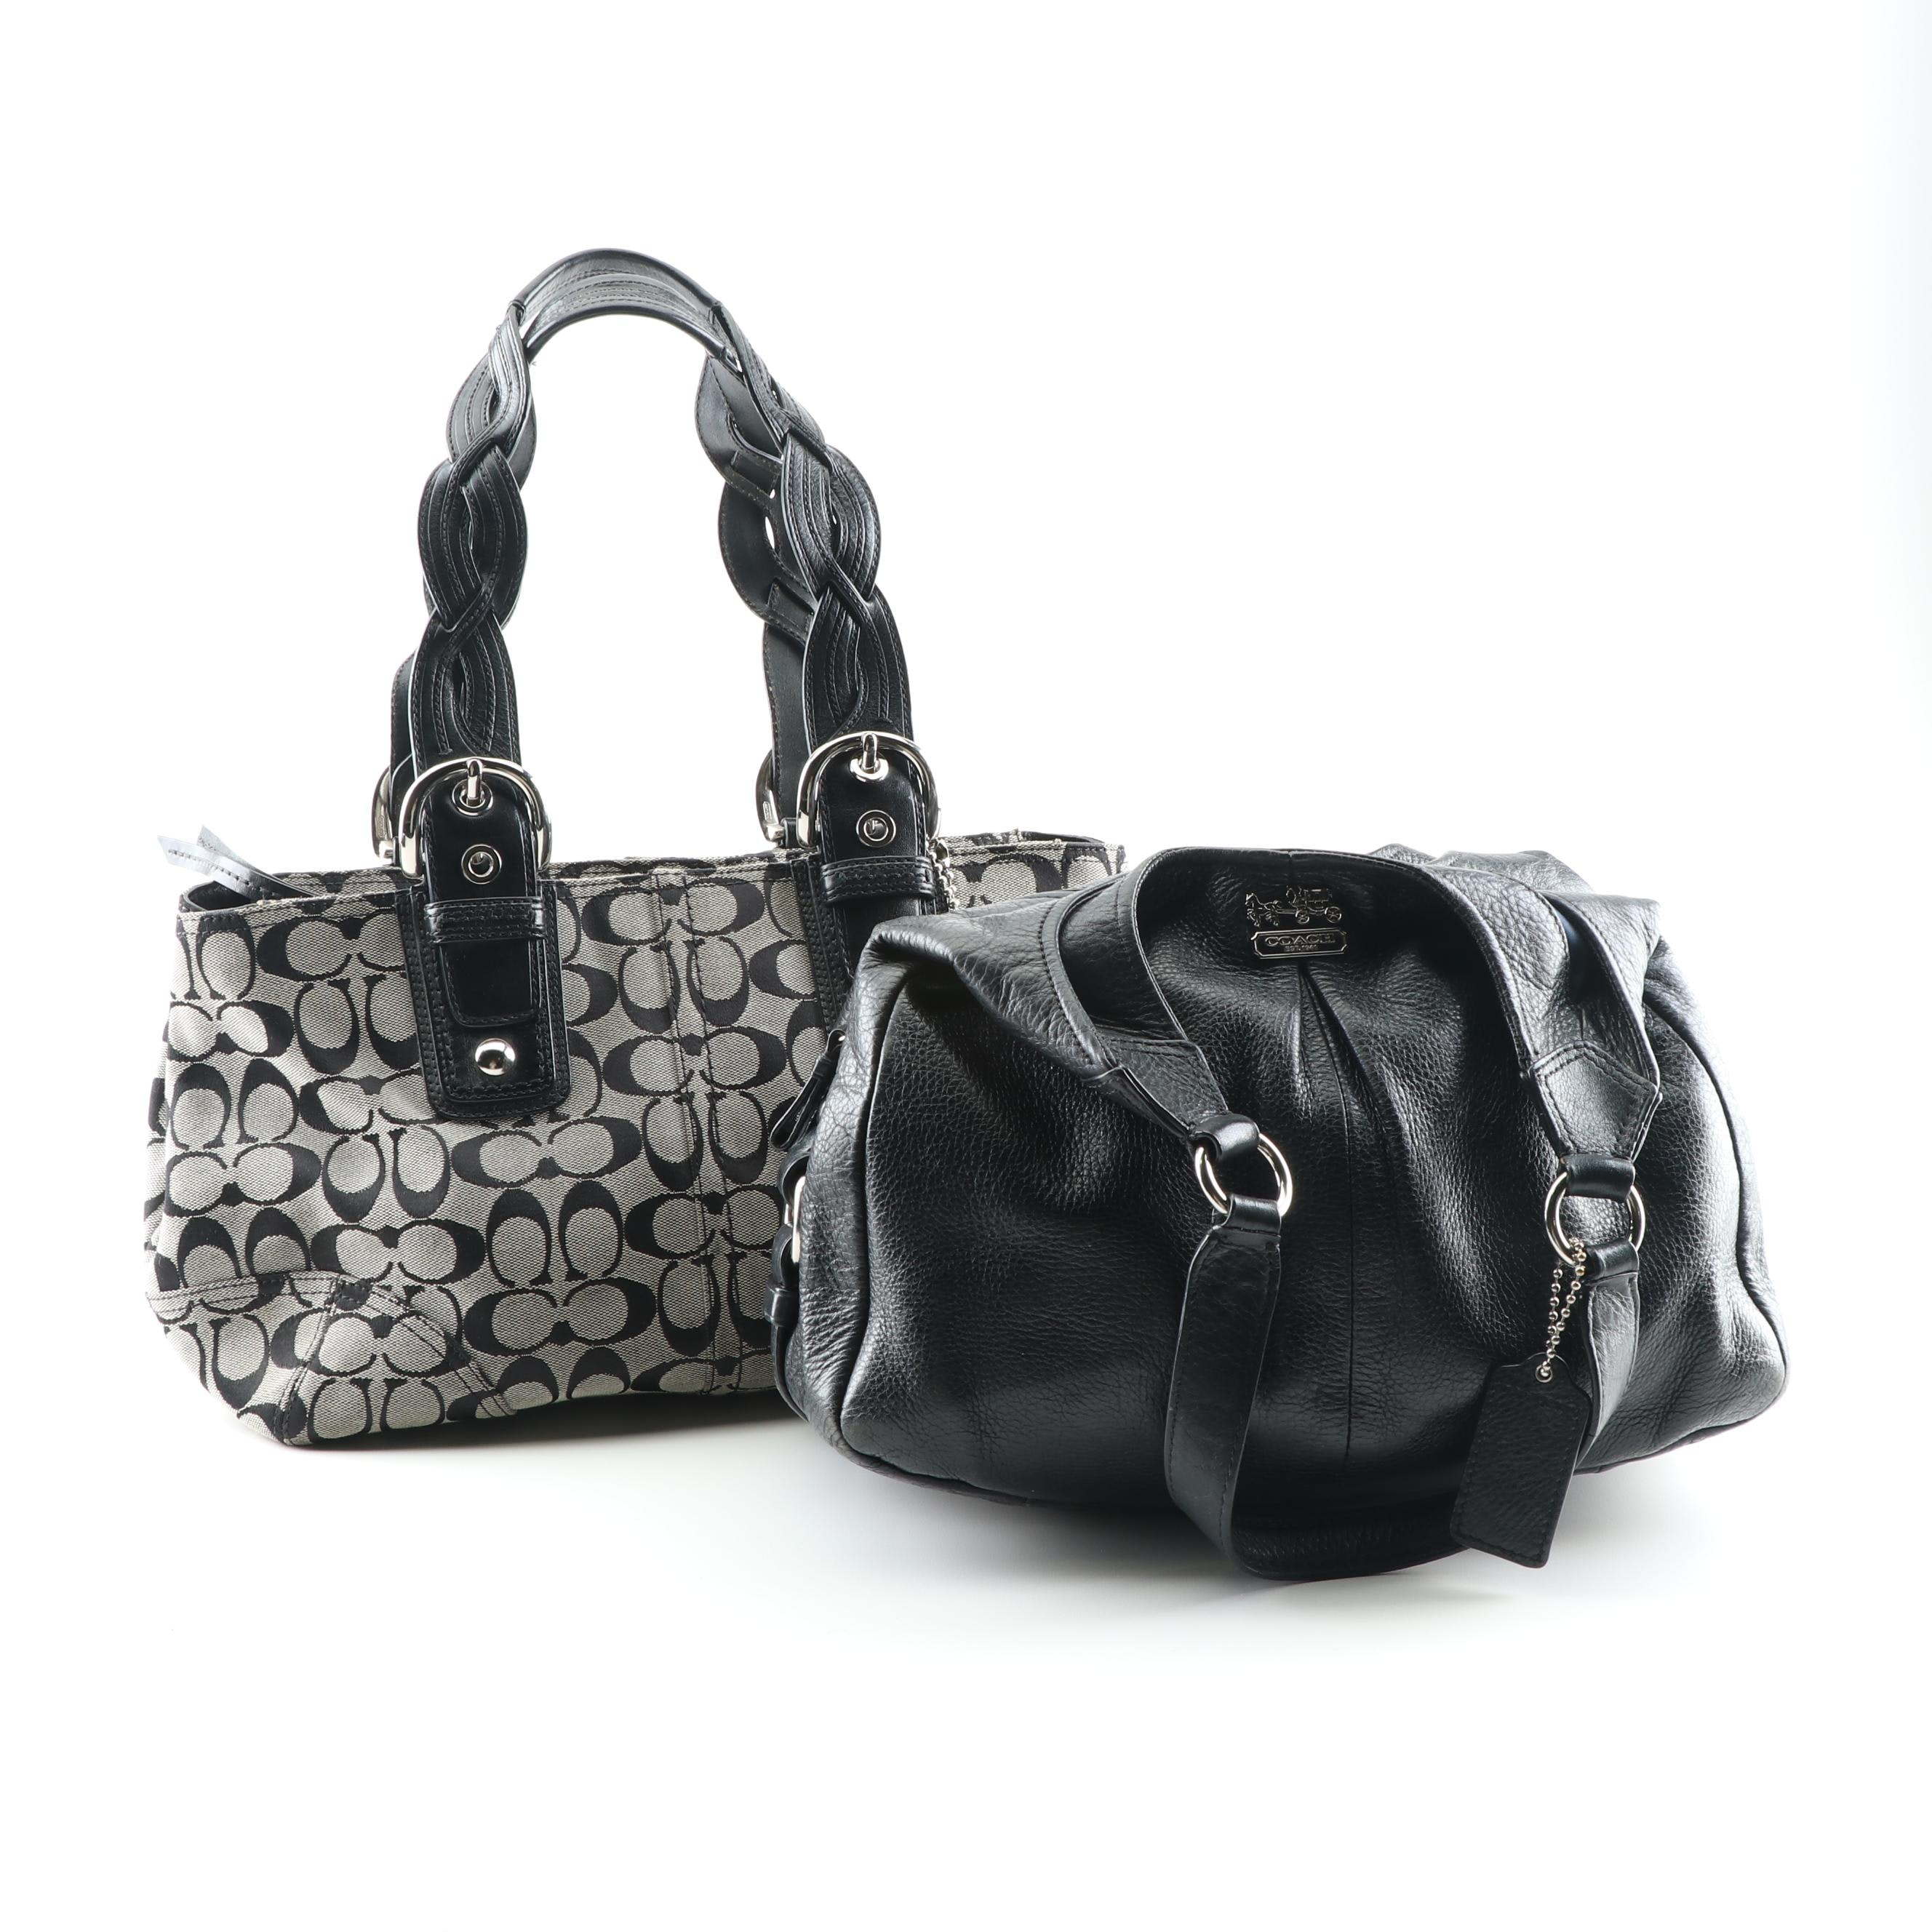 Coach Monogram Canvas and Black Leather Handbags